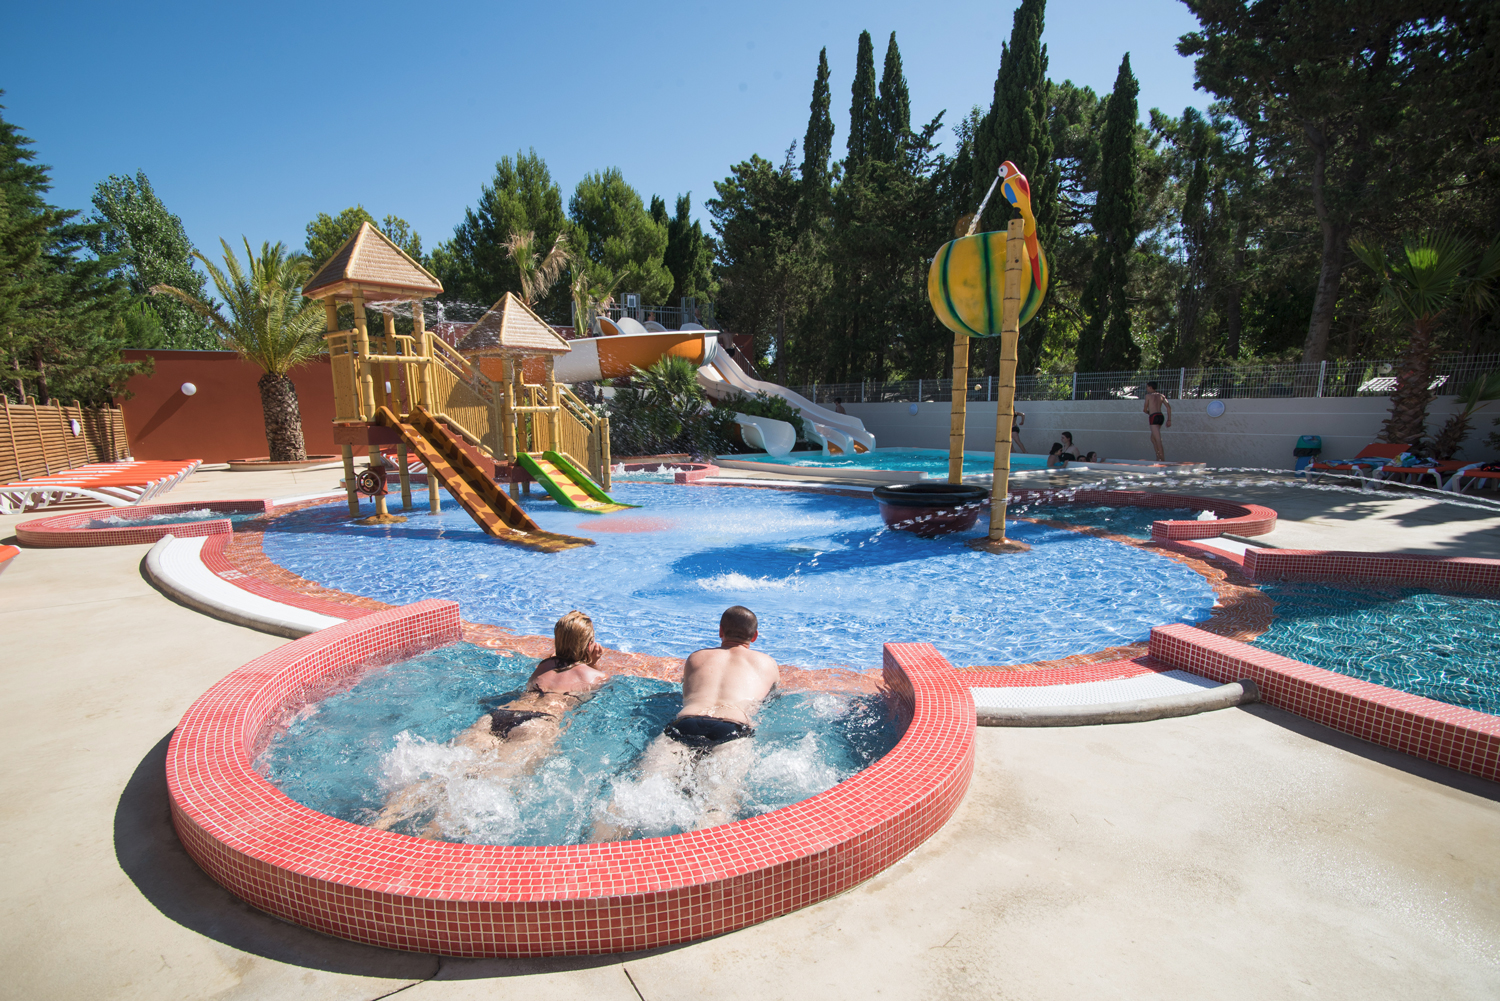 Camping piscine pyr n es orientales camping languedoc for Camping en languedoc roussillon avec piscine